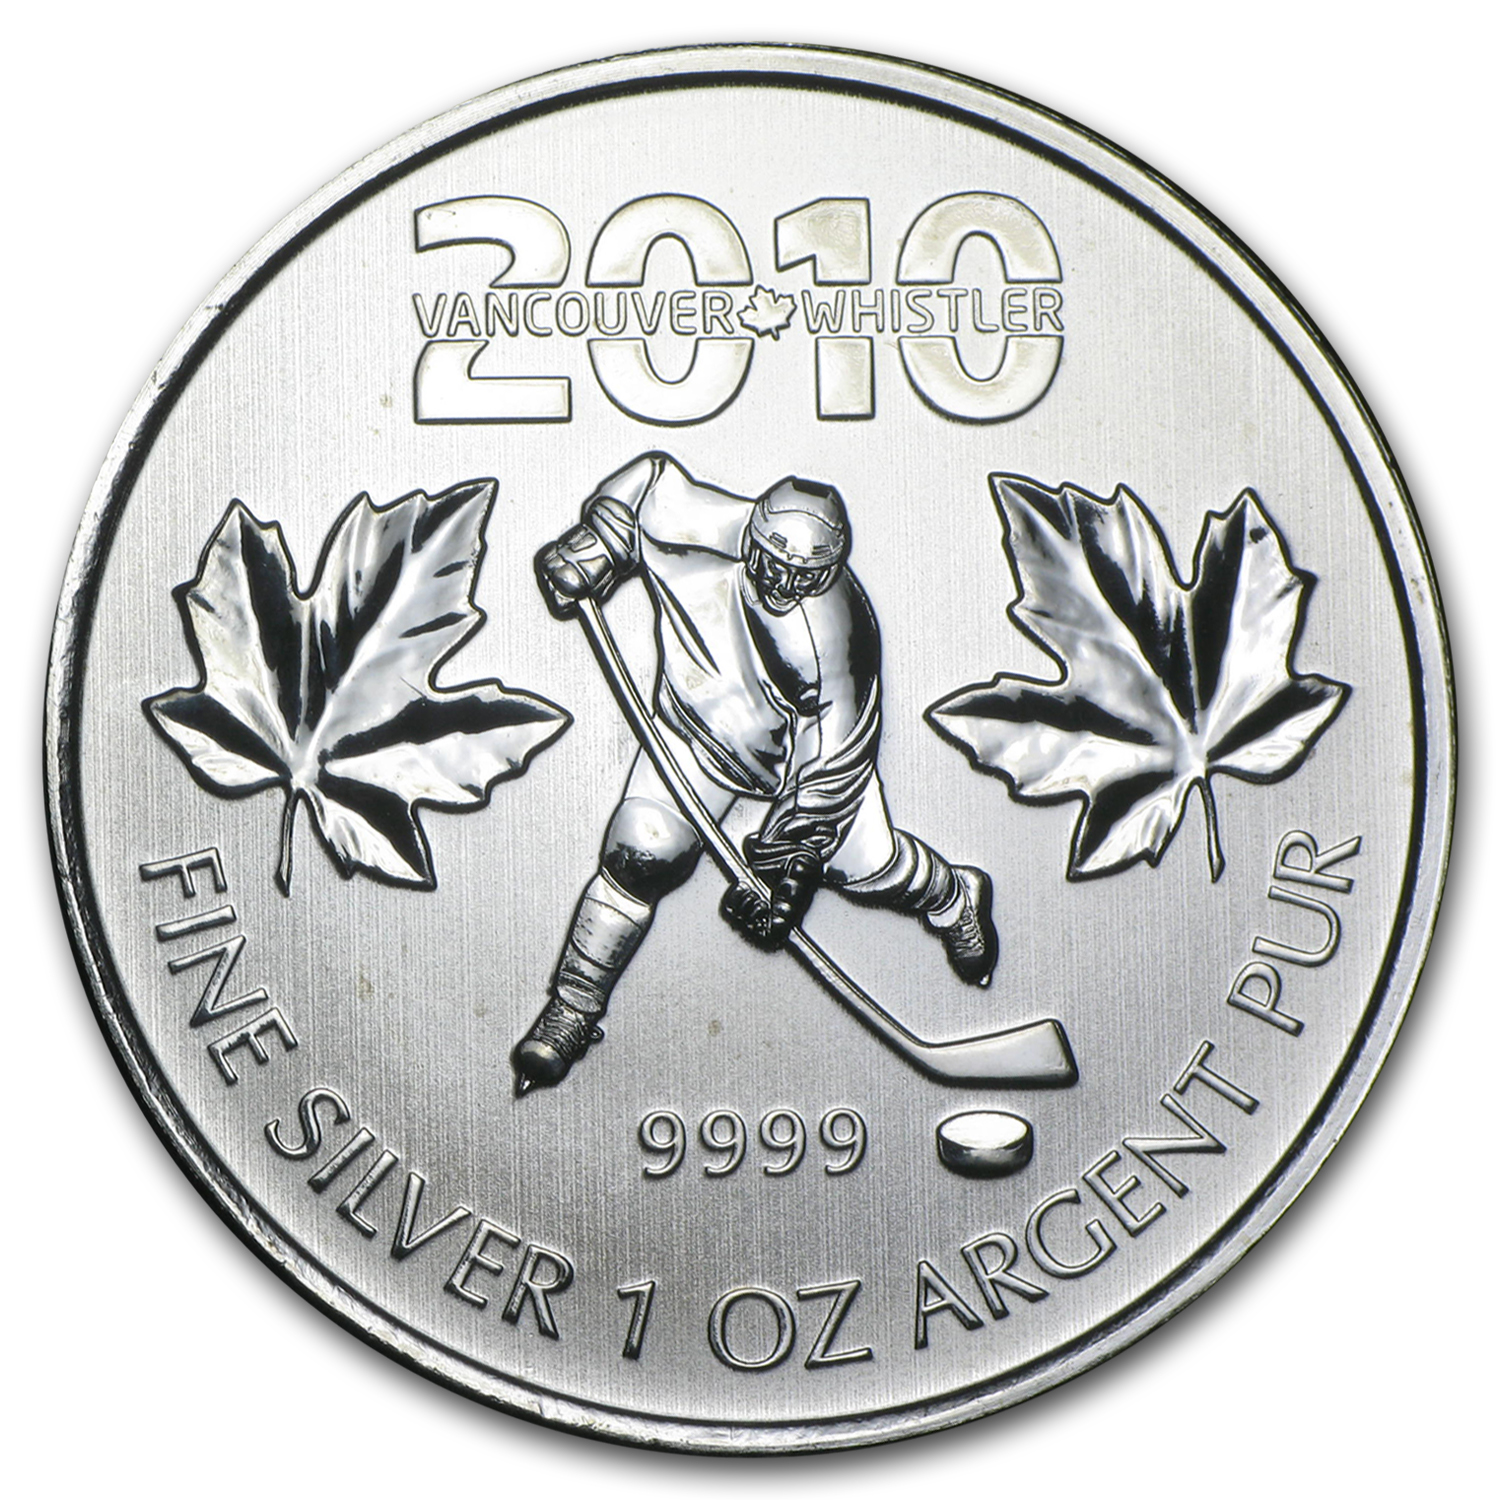 2010 Canada 1 oz Silver Olympic Hockey BU